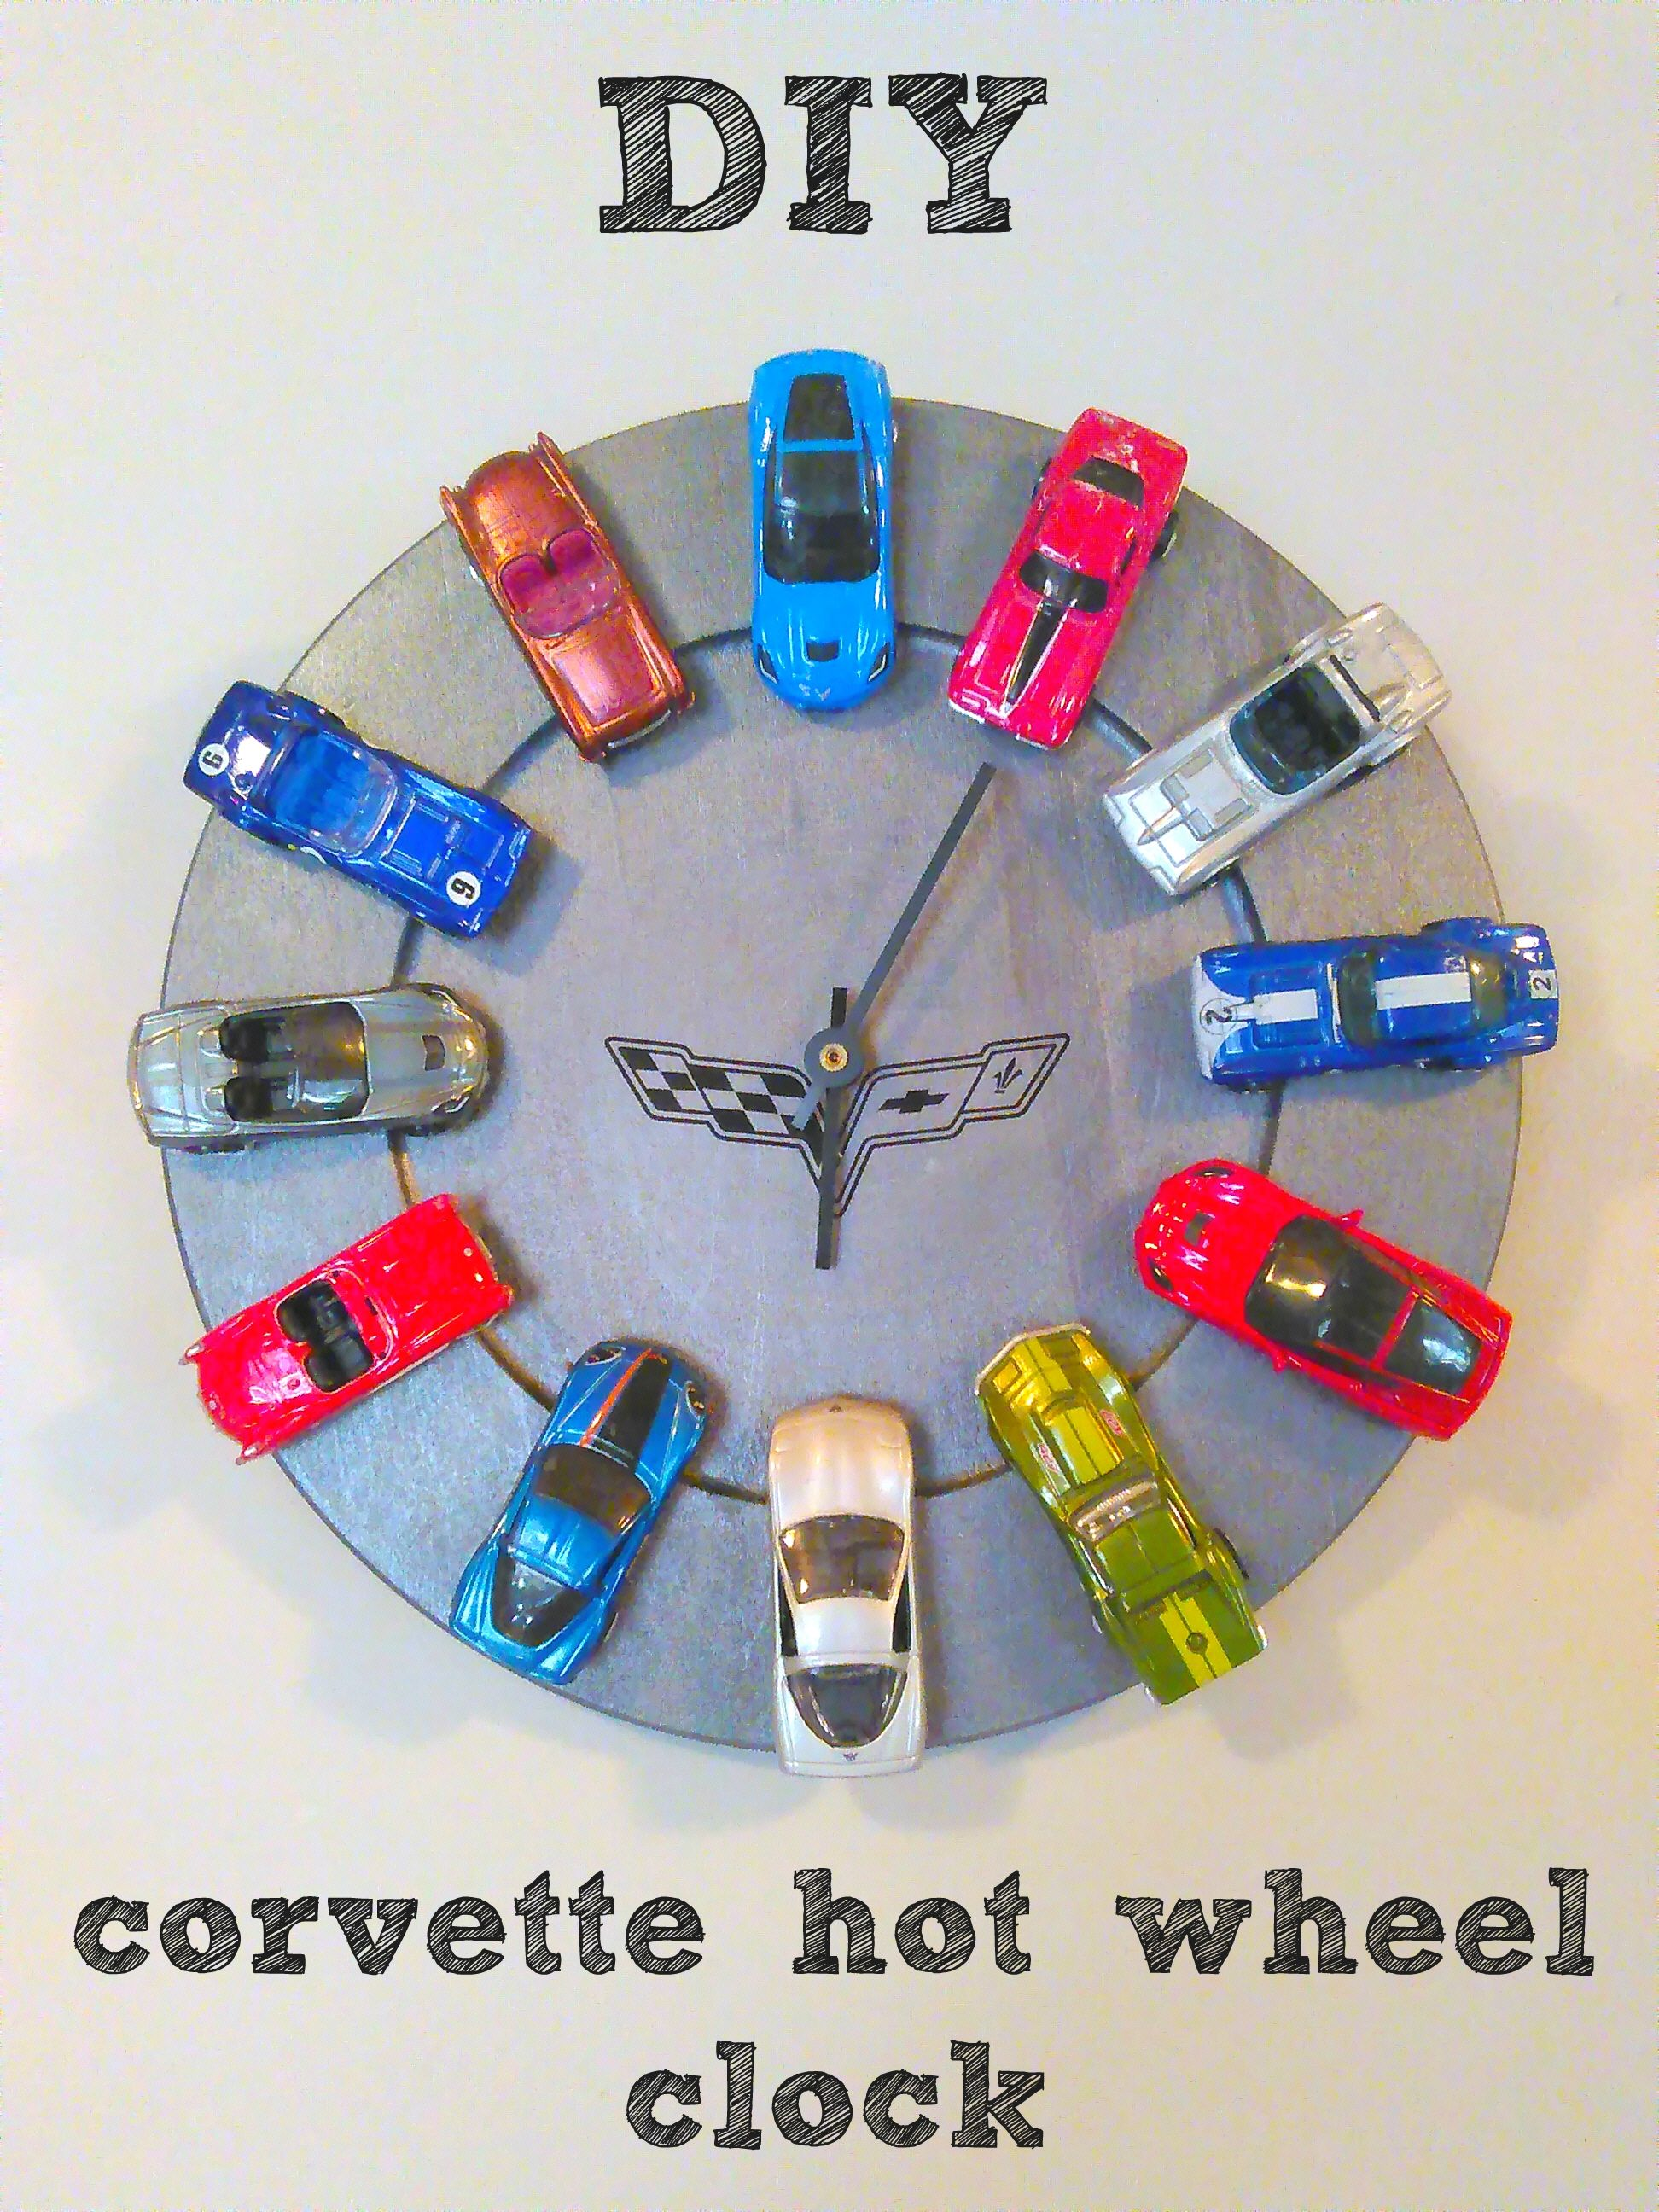 Love Cars This Diy Is The Perfect Gift For The Car Lover In Your Life You Could Use Any Cars Any Color Cars So Many Diy Clock Car Clock